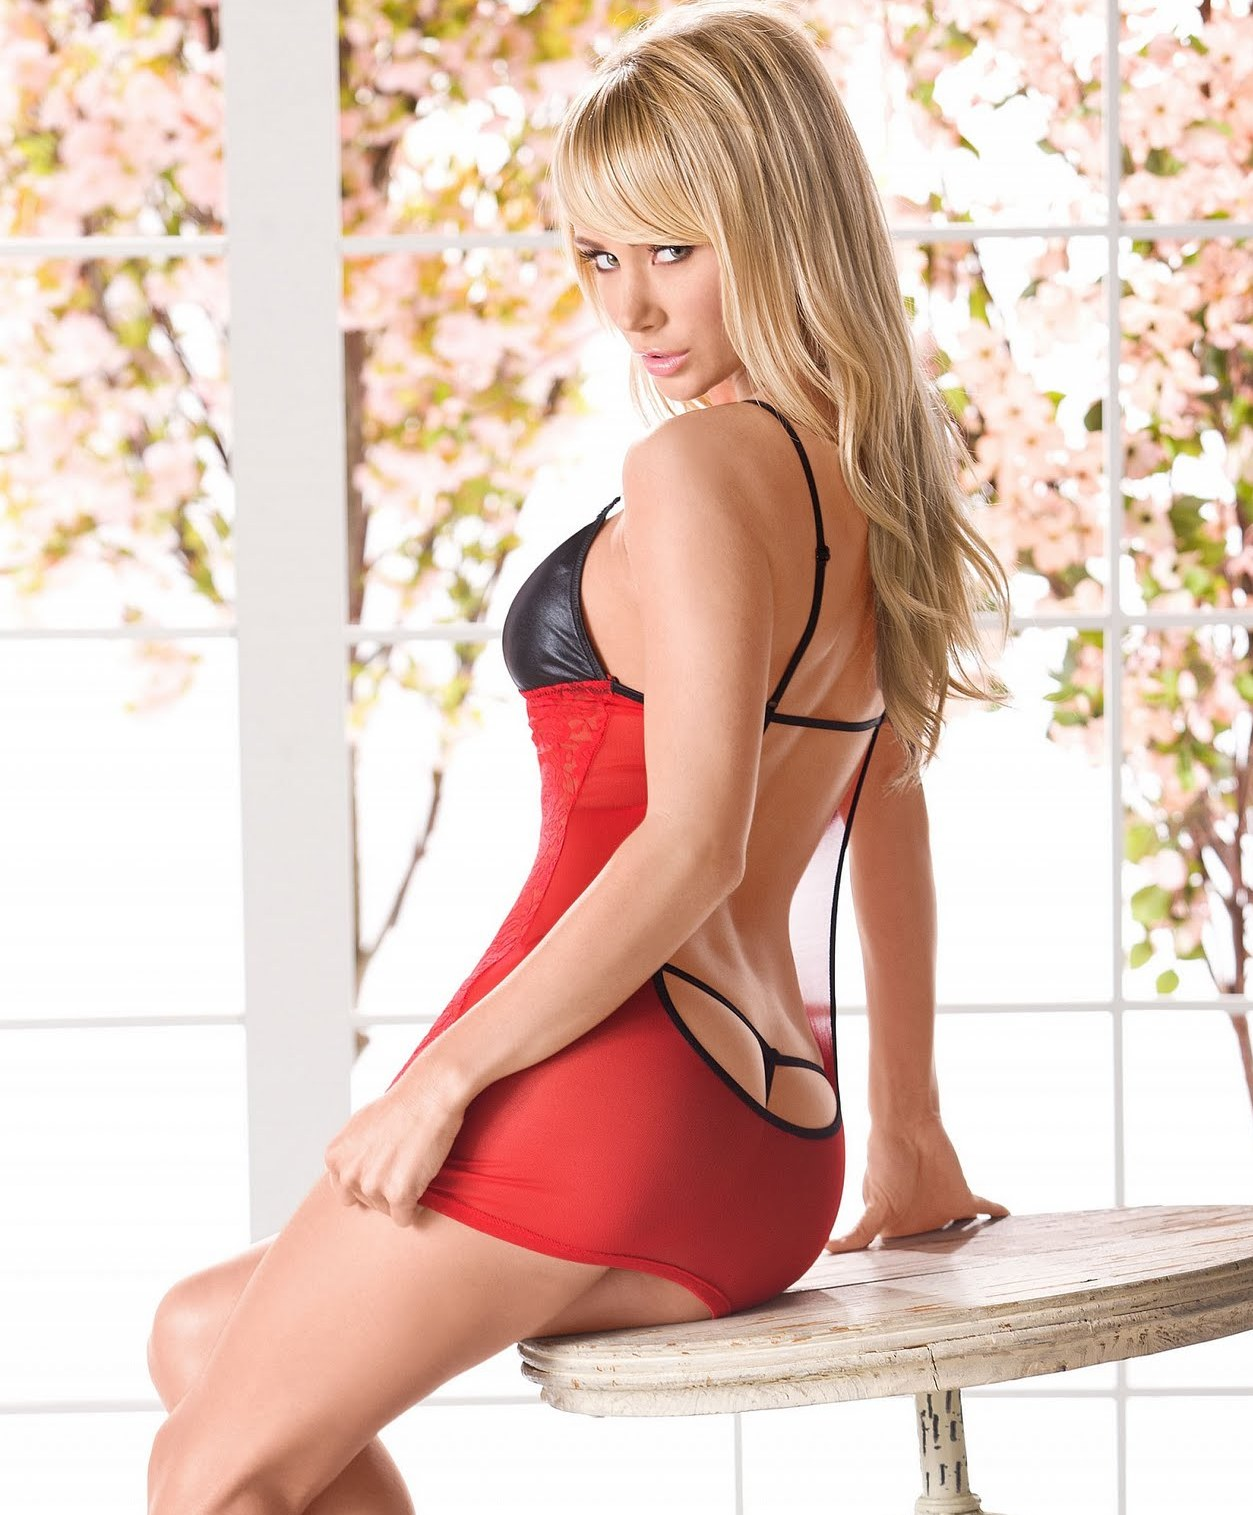 sara jean underwood ass in a thong